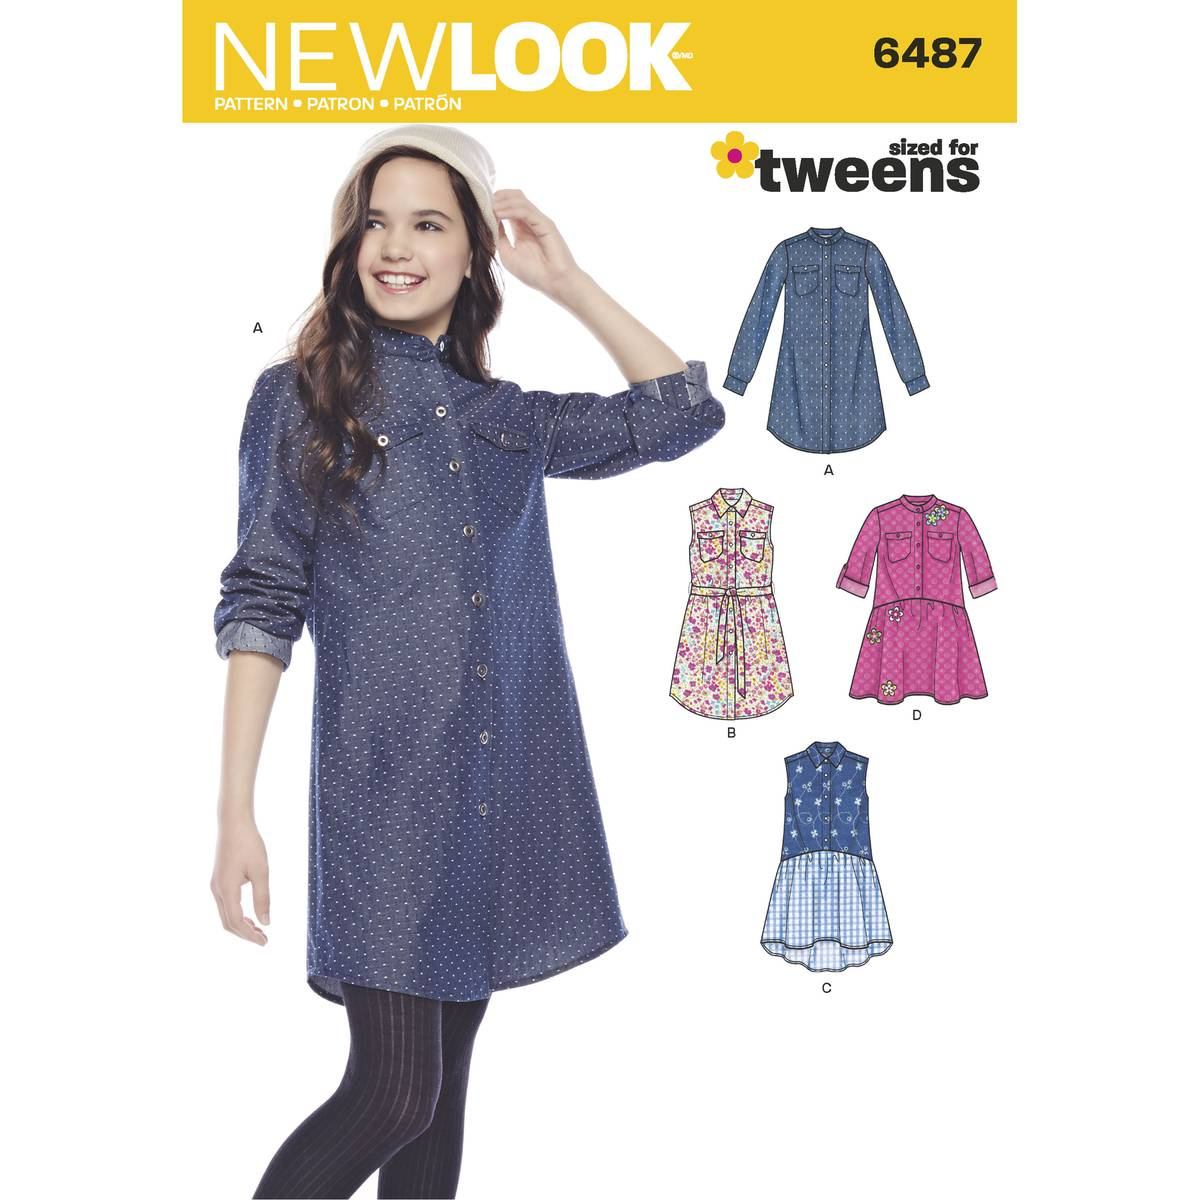 Girls Sewing Patterns New Look Girls Shirt Dress Sewing Pattern 6487 Hobcraft